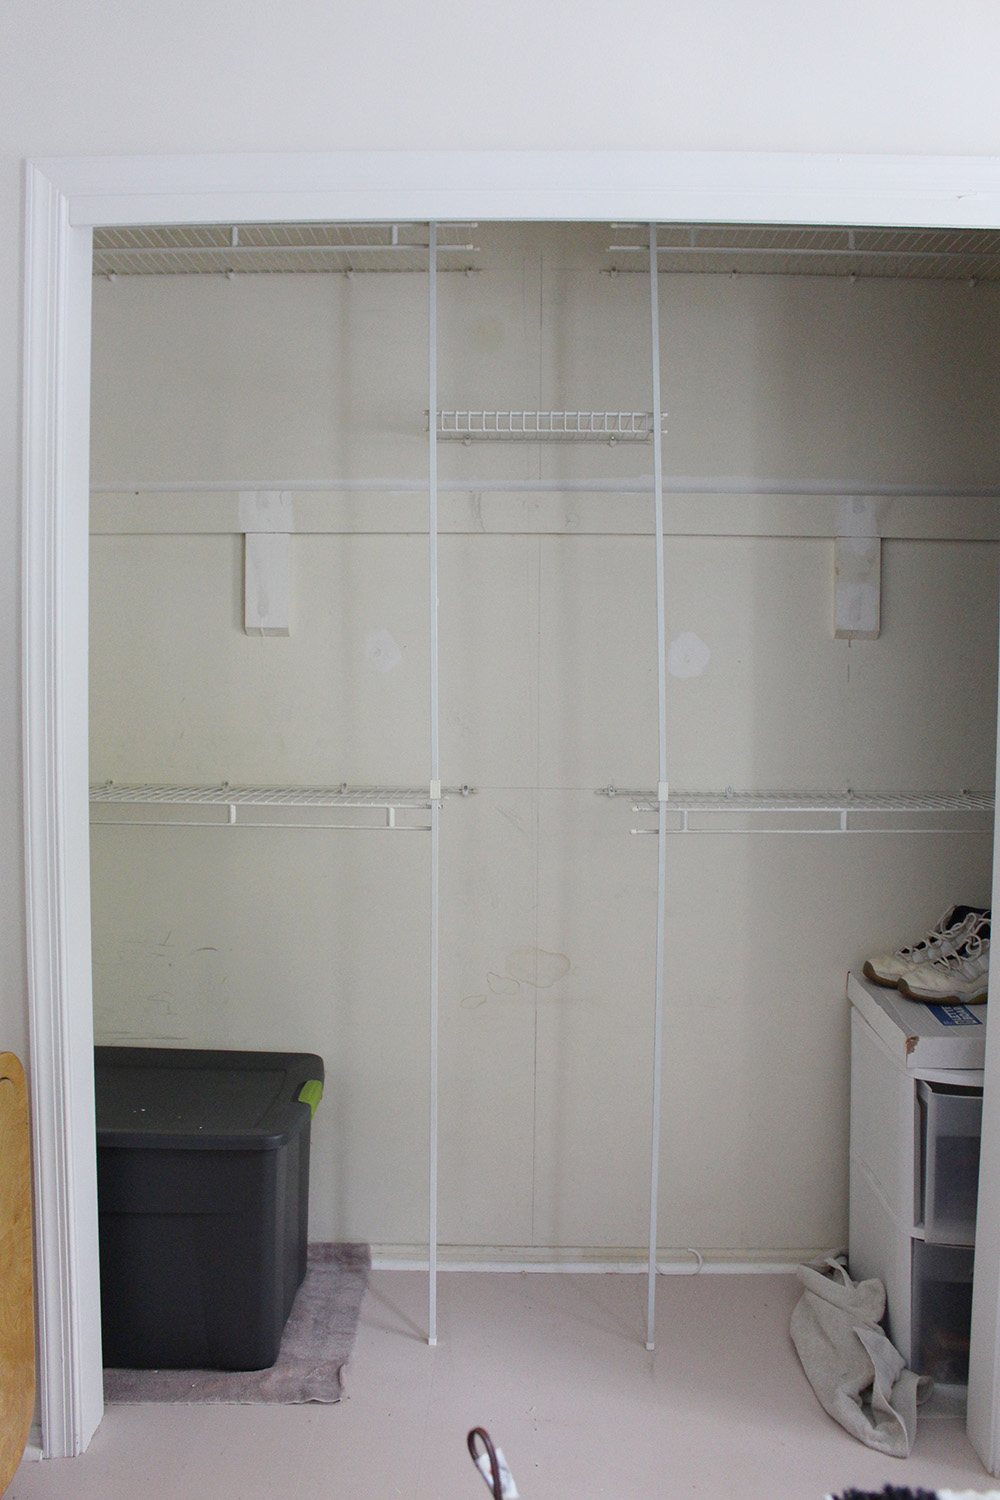 A closet with wire shelving and no doors.